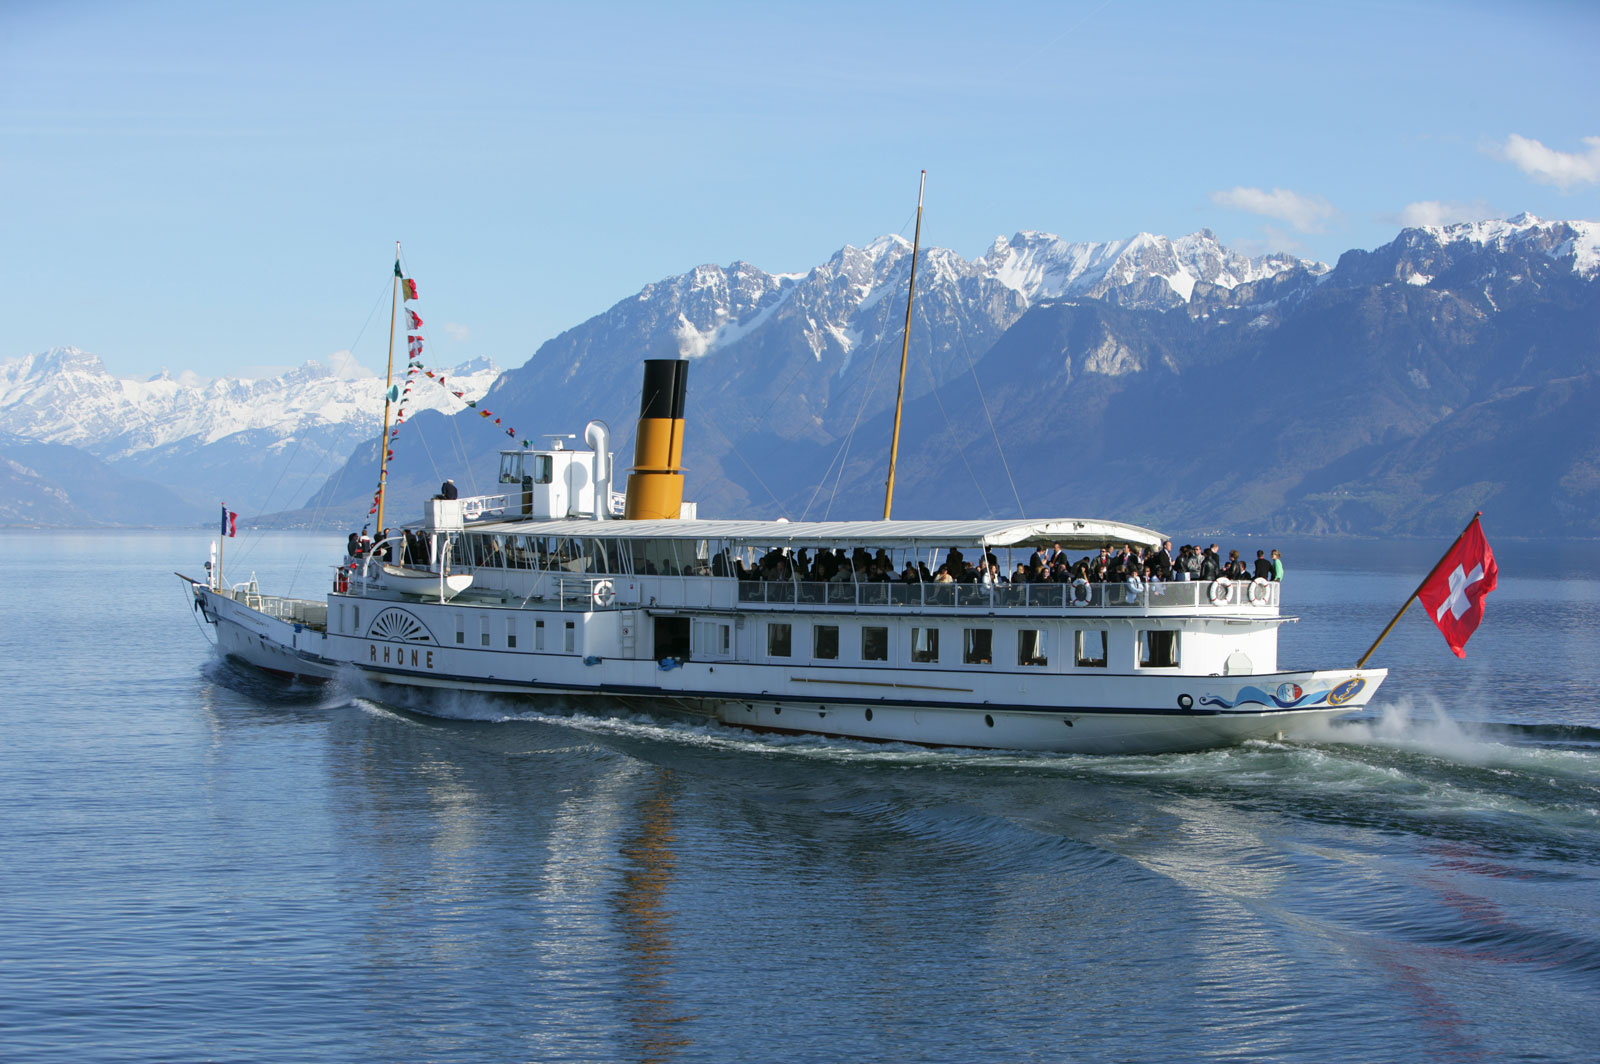 paddle-steamer-lausanne